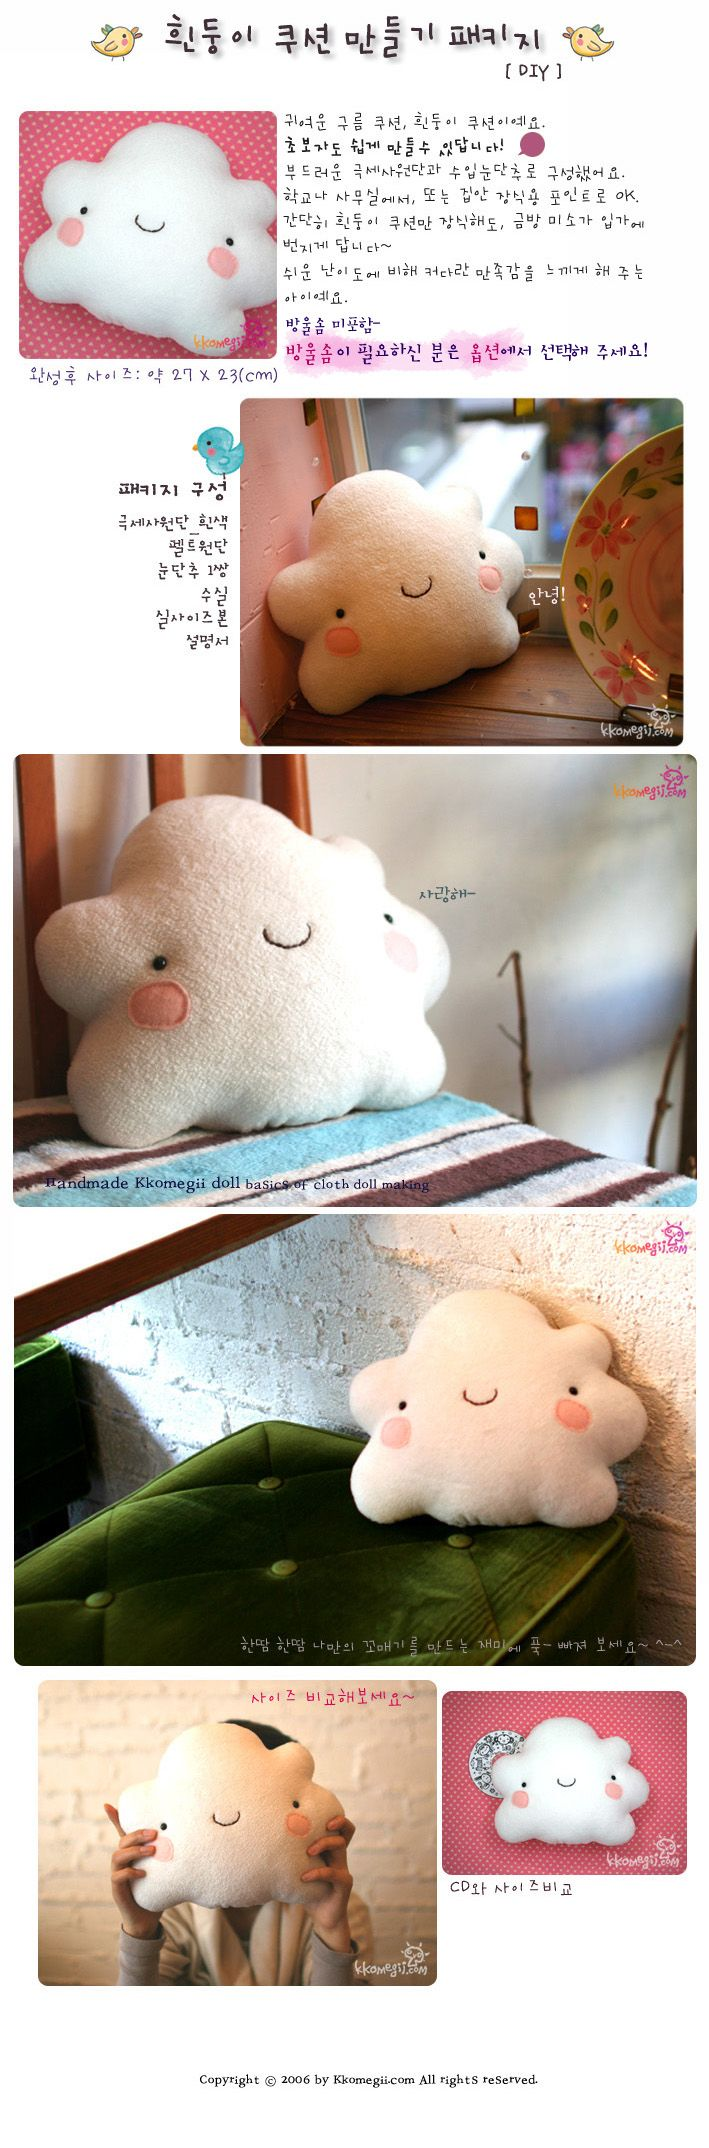 DIY: Cloud Plush (Inspiration)